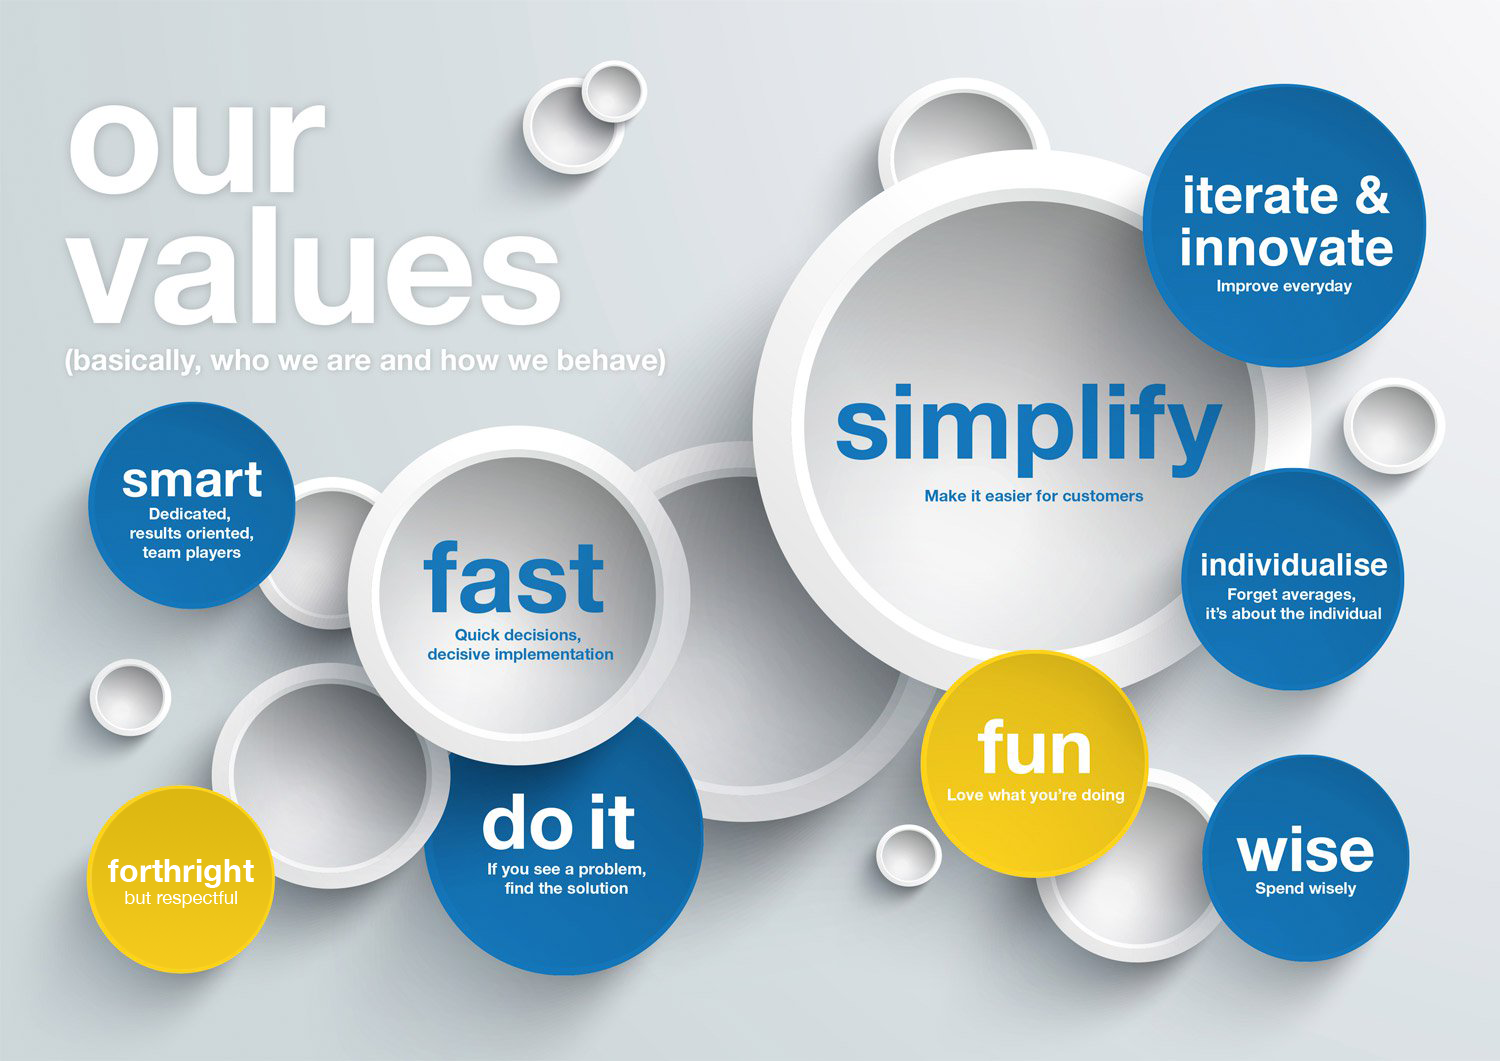 our_values-1